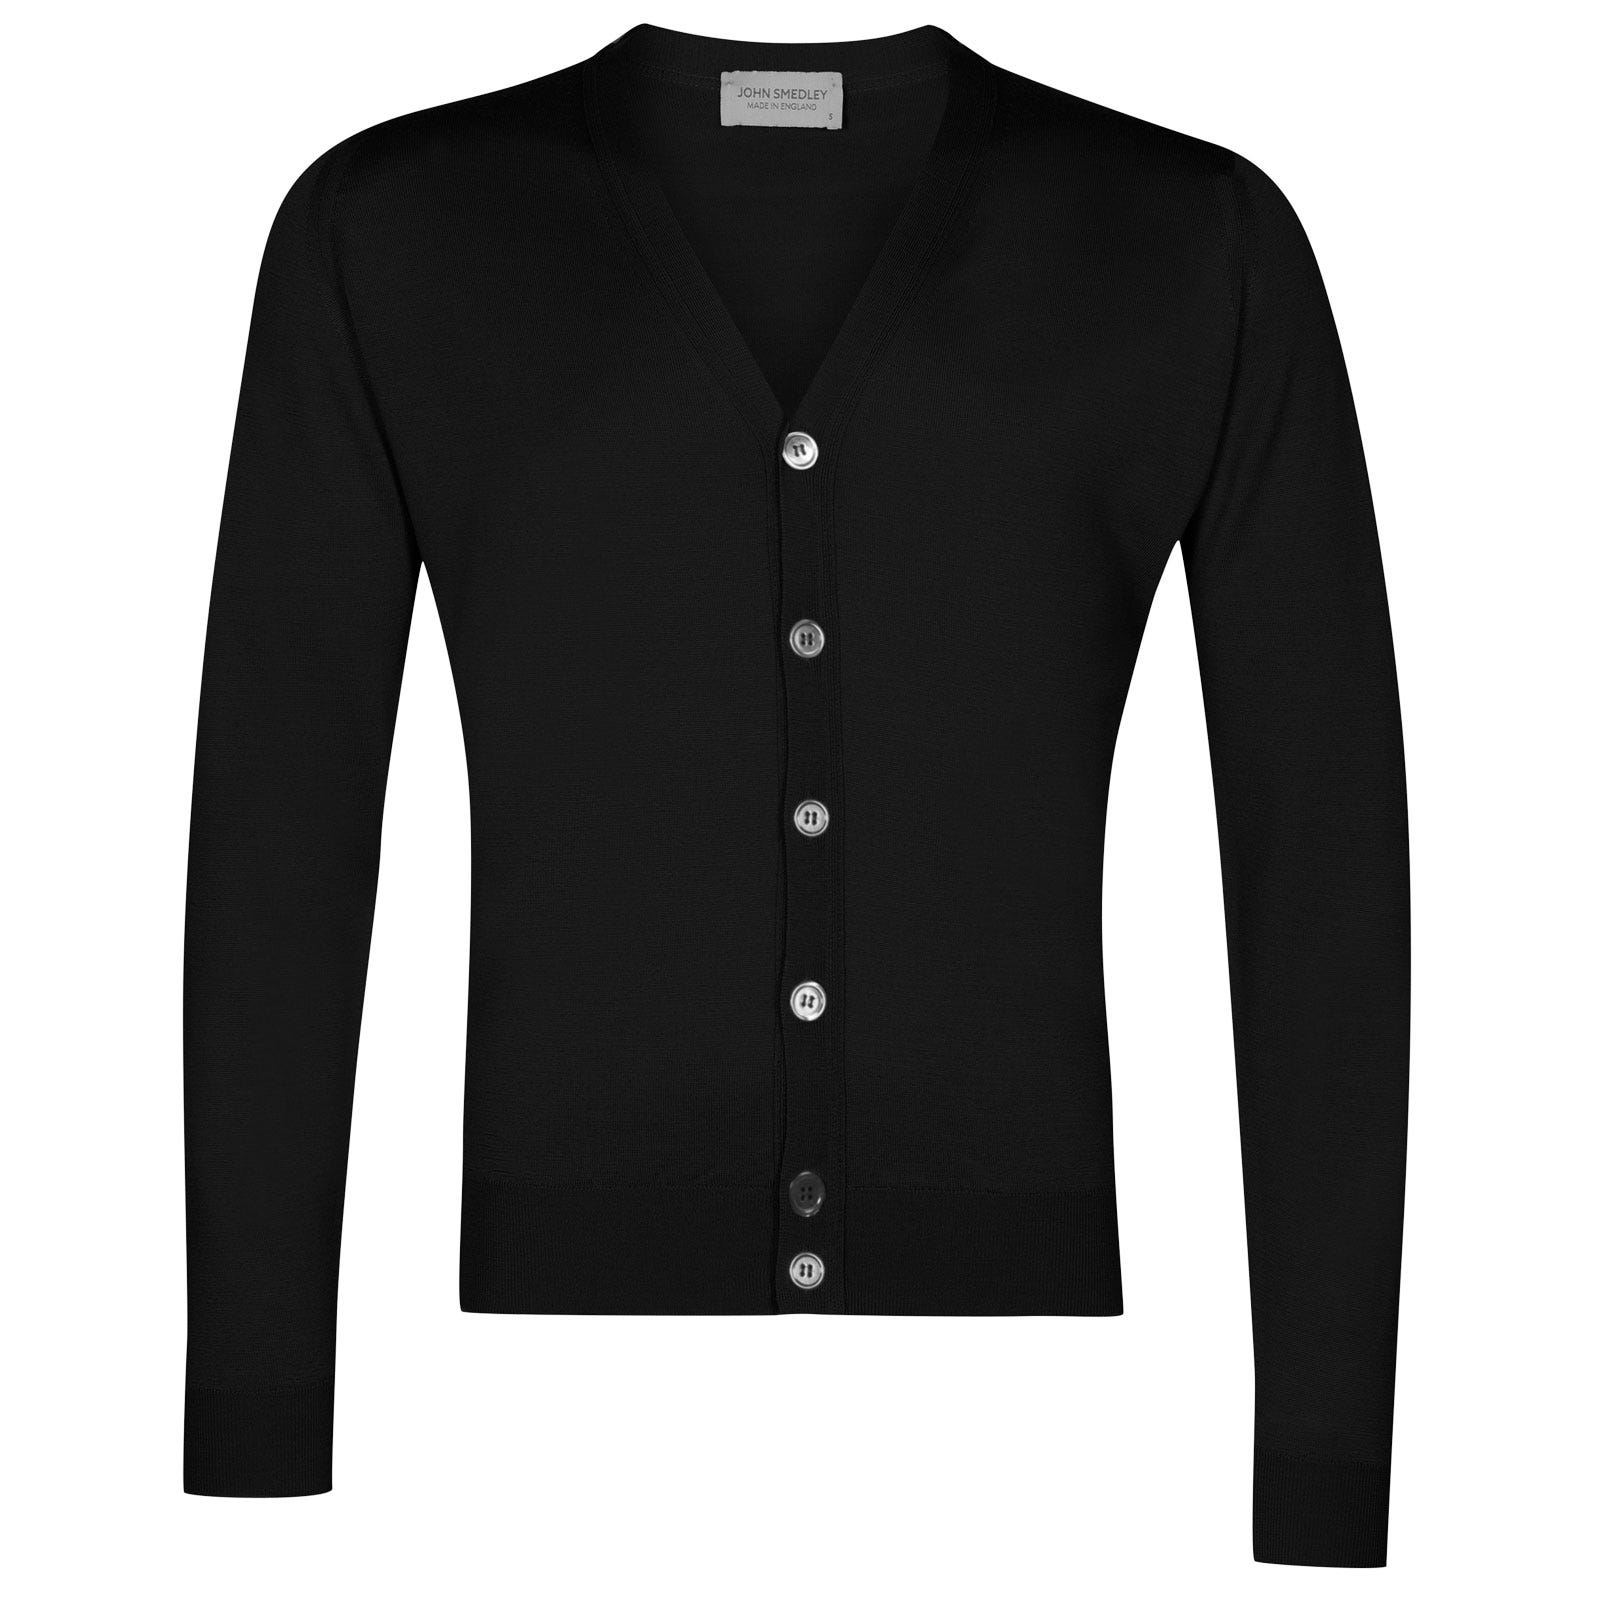 John Smedley Naples Merino Wool Cardigan in Black-M